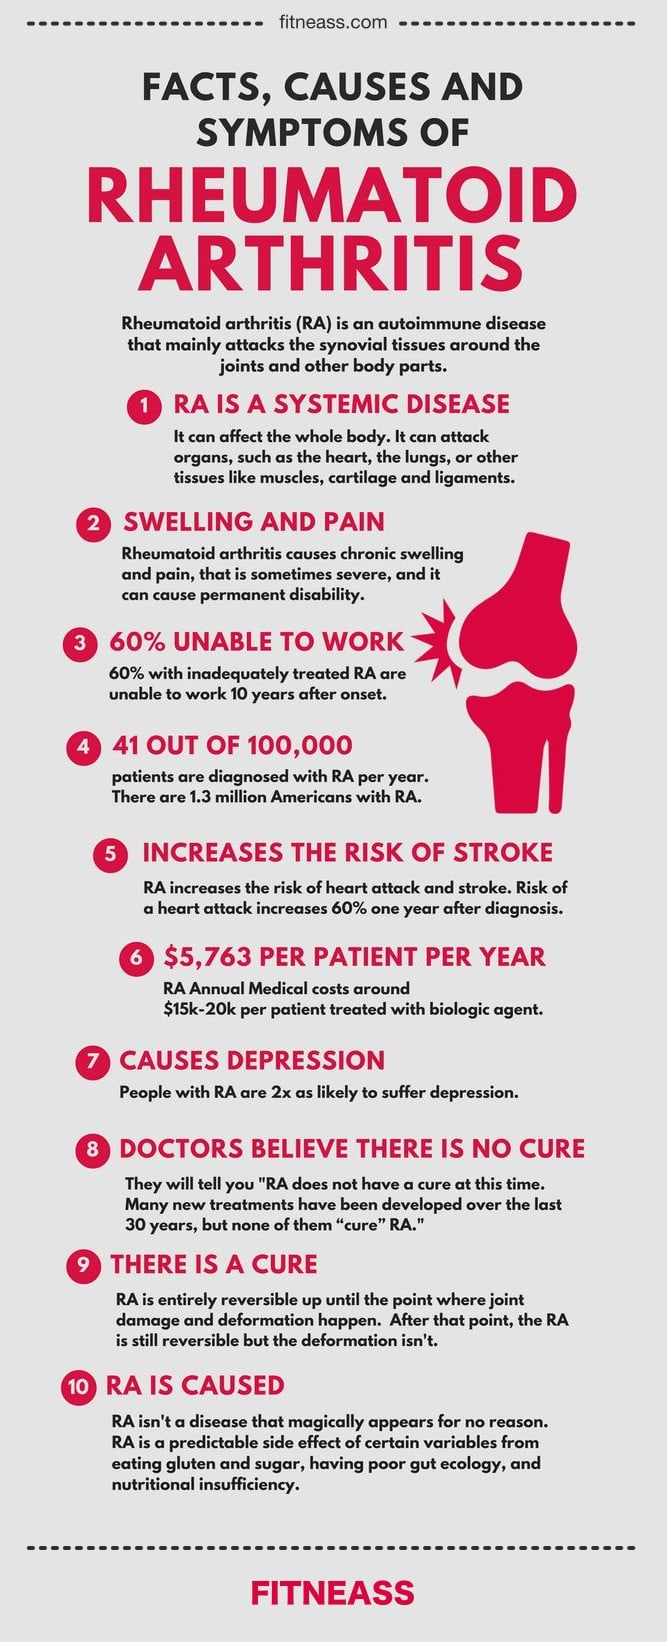 Facts, Causes And Symptoms Of Rheumatoid Arthritis - Infographic